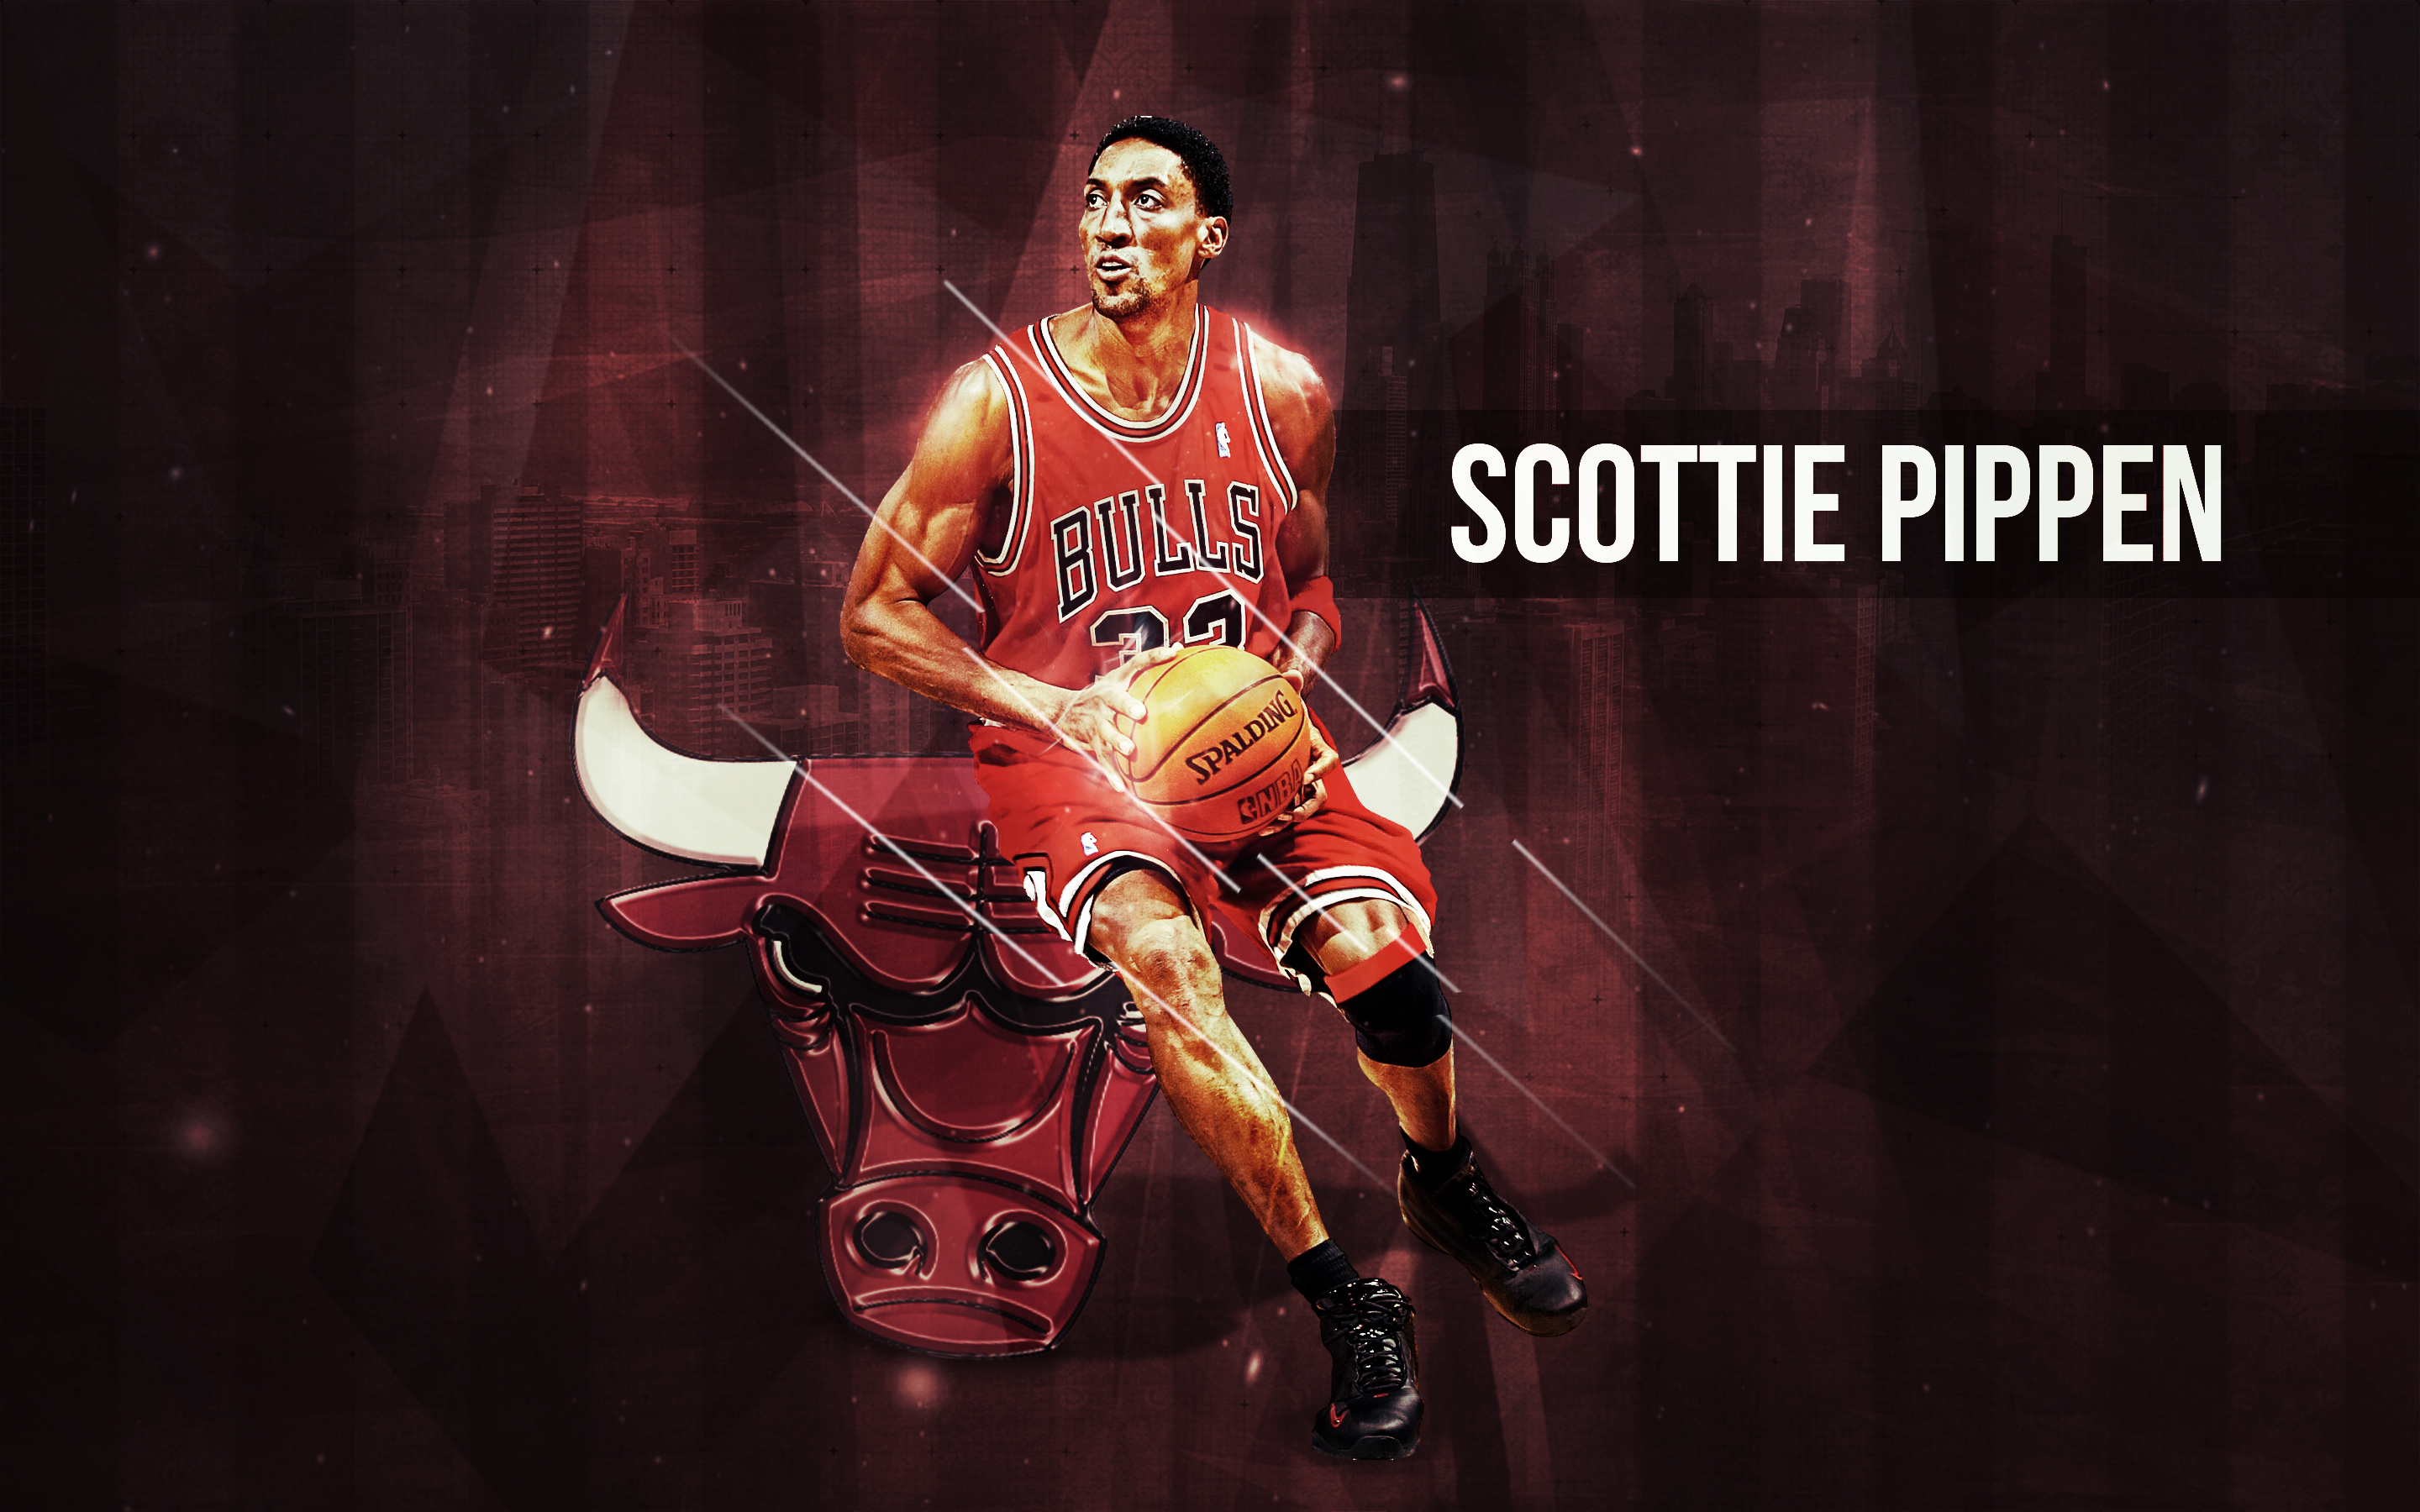 Scottie Pippen All Star Red Shoes